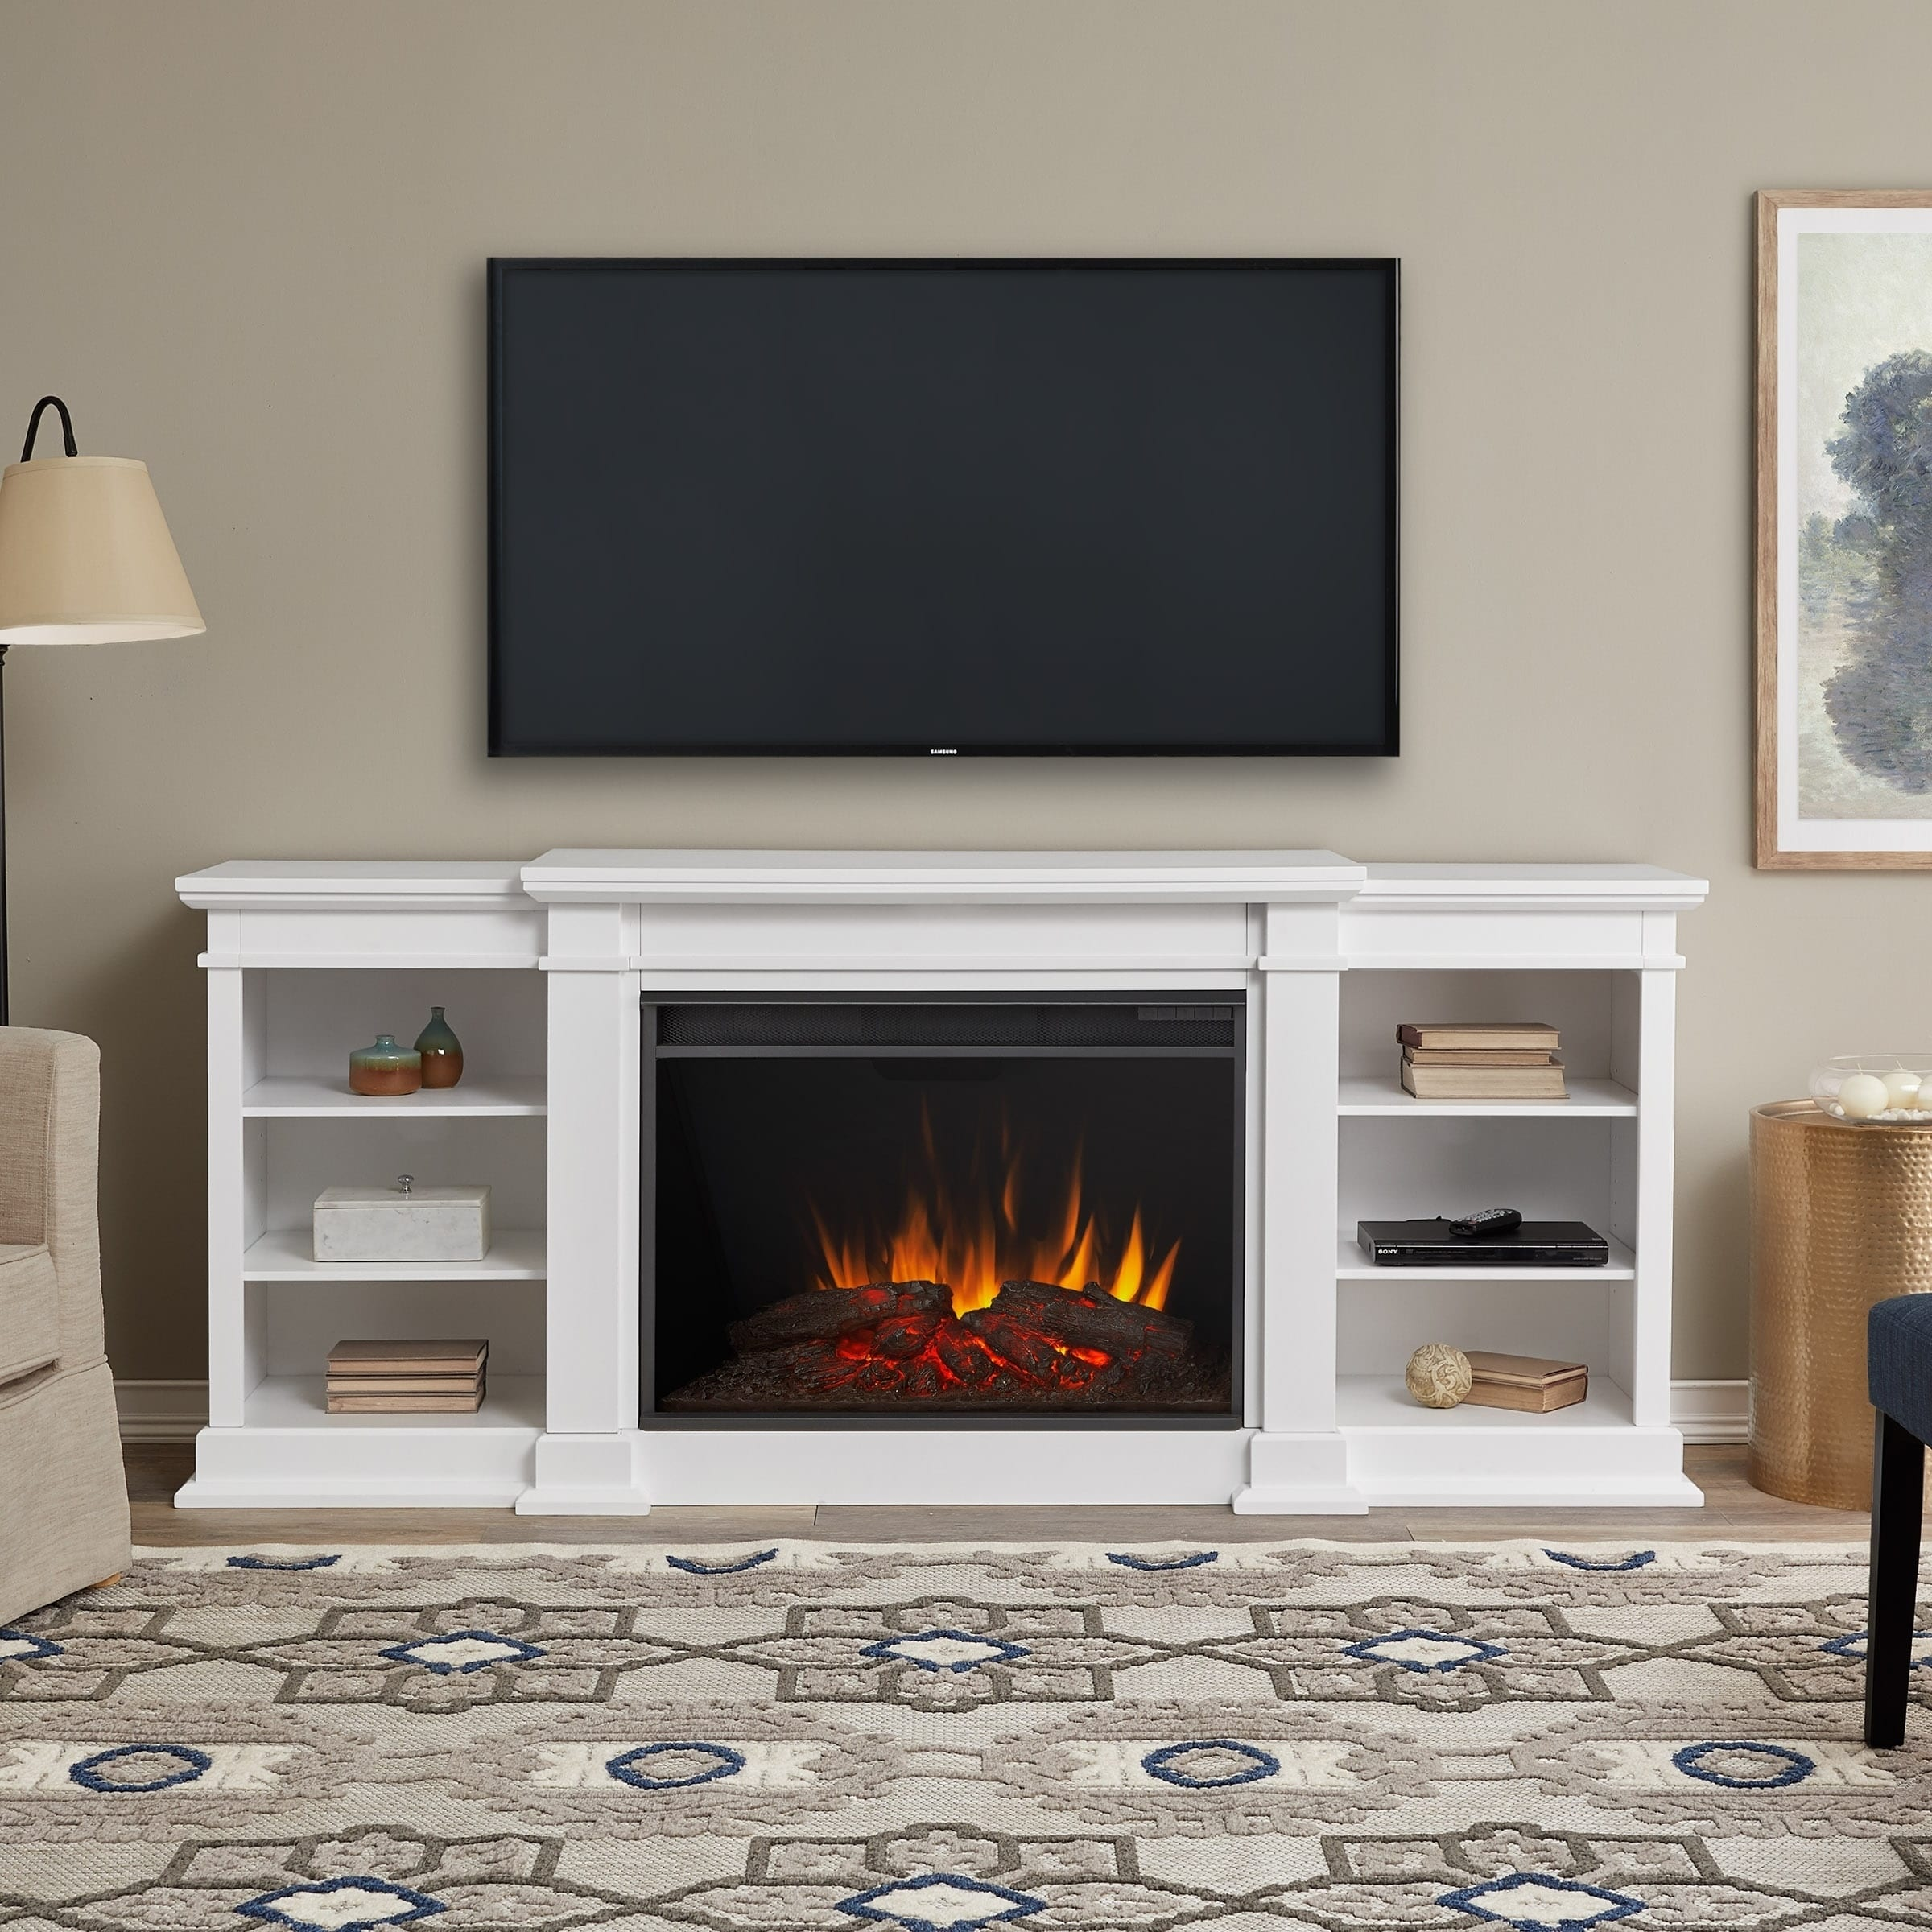 By 34 25h 81 Electric Grand Entertainment Flame 125l X Real 19w In White Eliot Fireplace v0Ow8Nmn